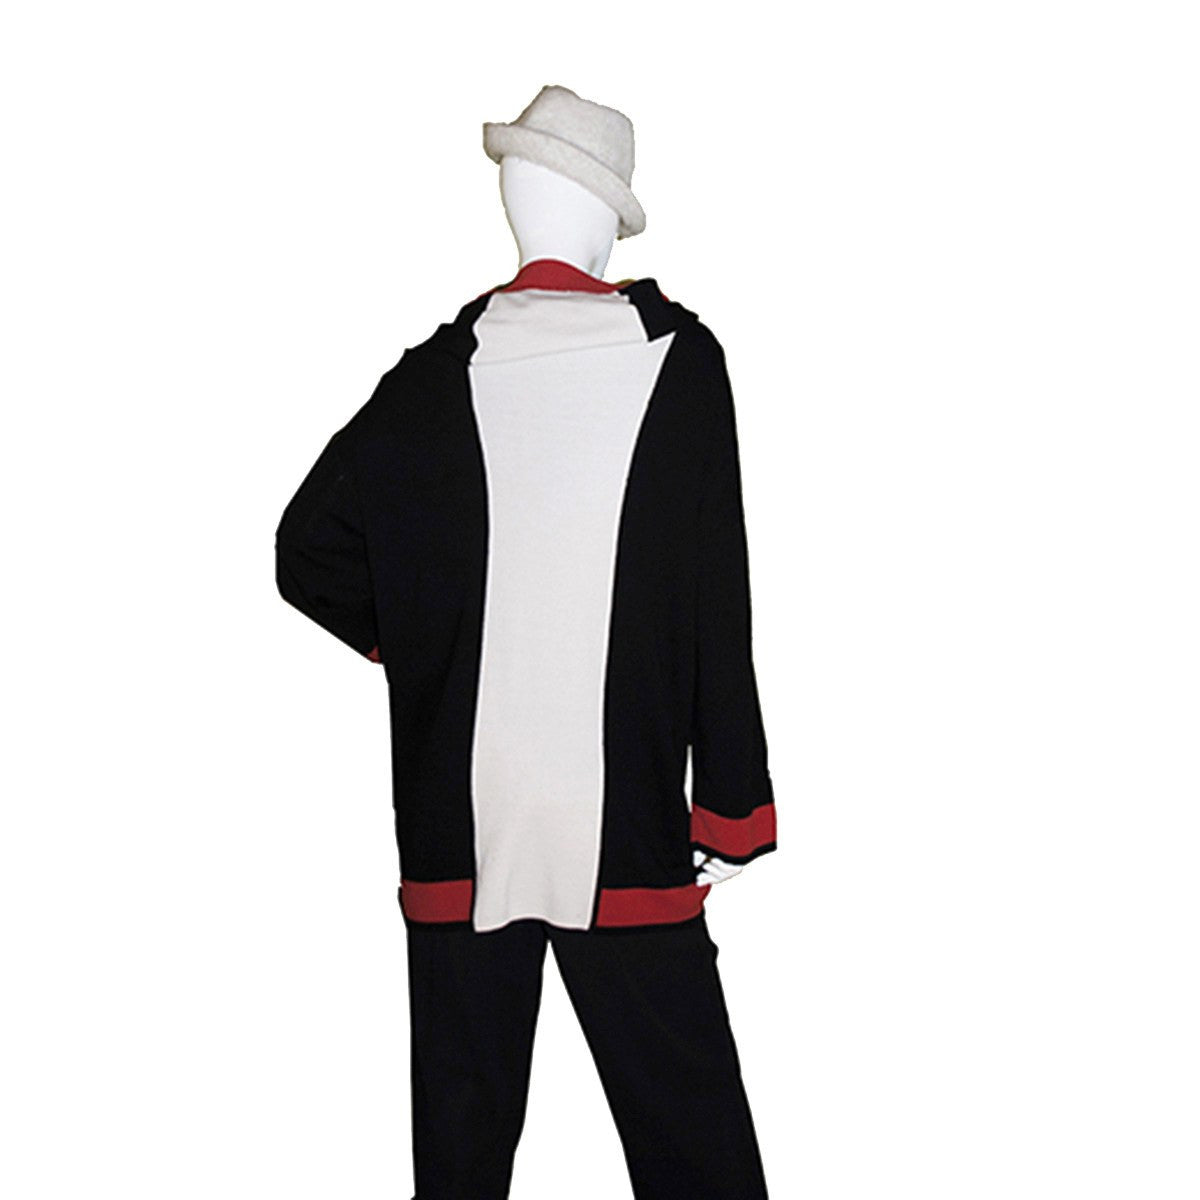 Vintage Italian Color Knit Cardigan 3, Self Hood, Red, Black & White Color Block 2